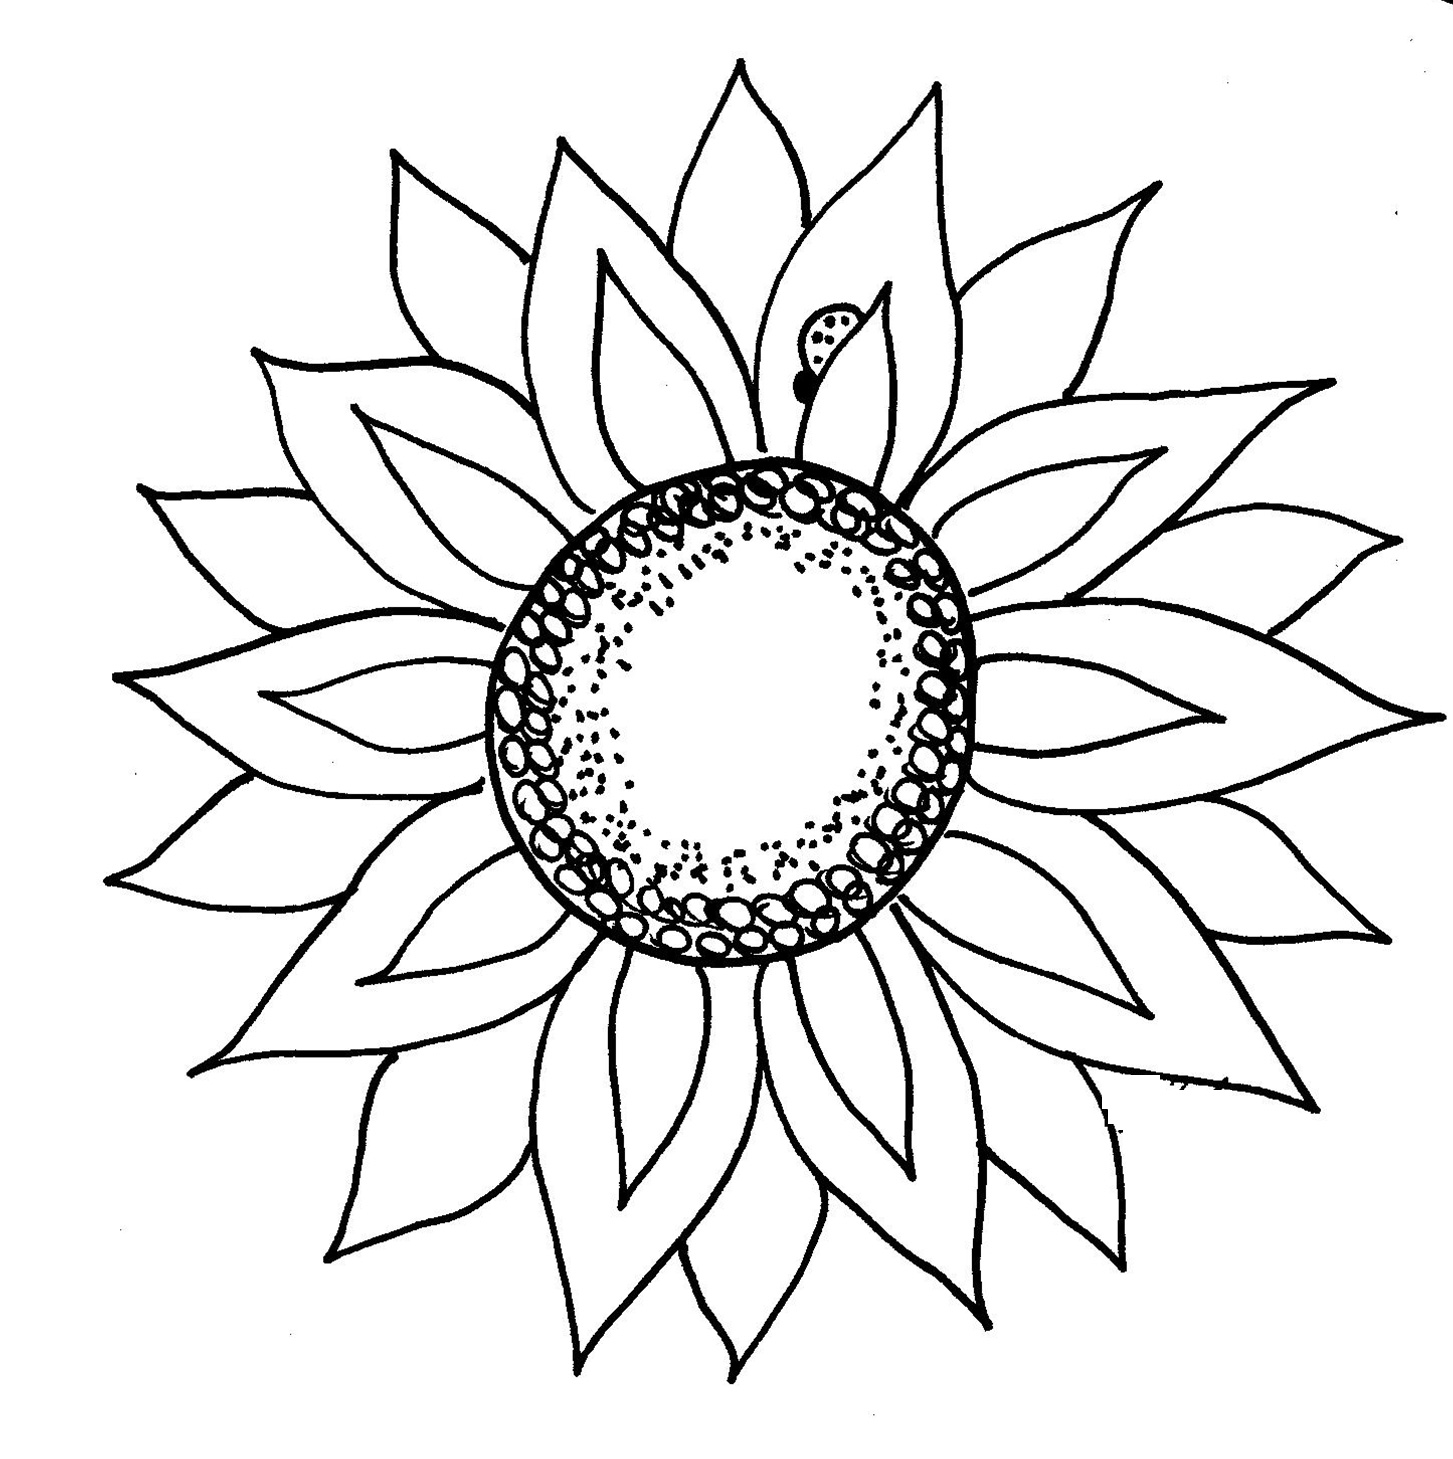 coloring flower clipart black and white flower outline pattern clipart best white black coloring flower and clipart